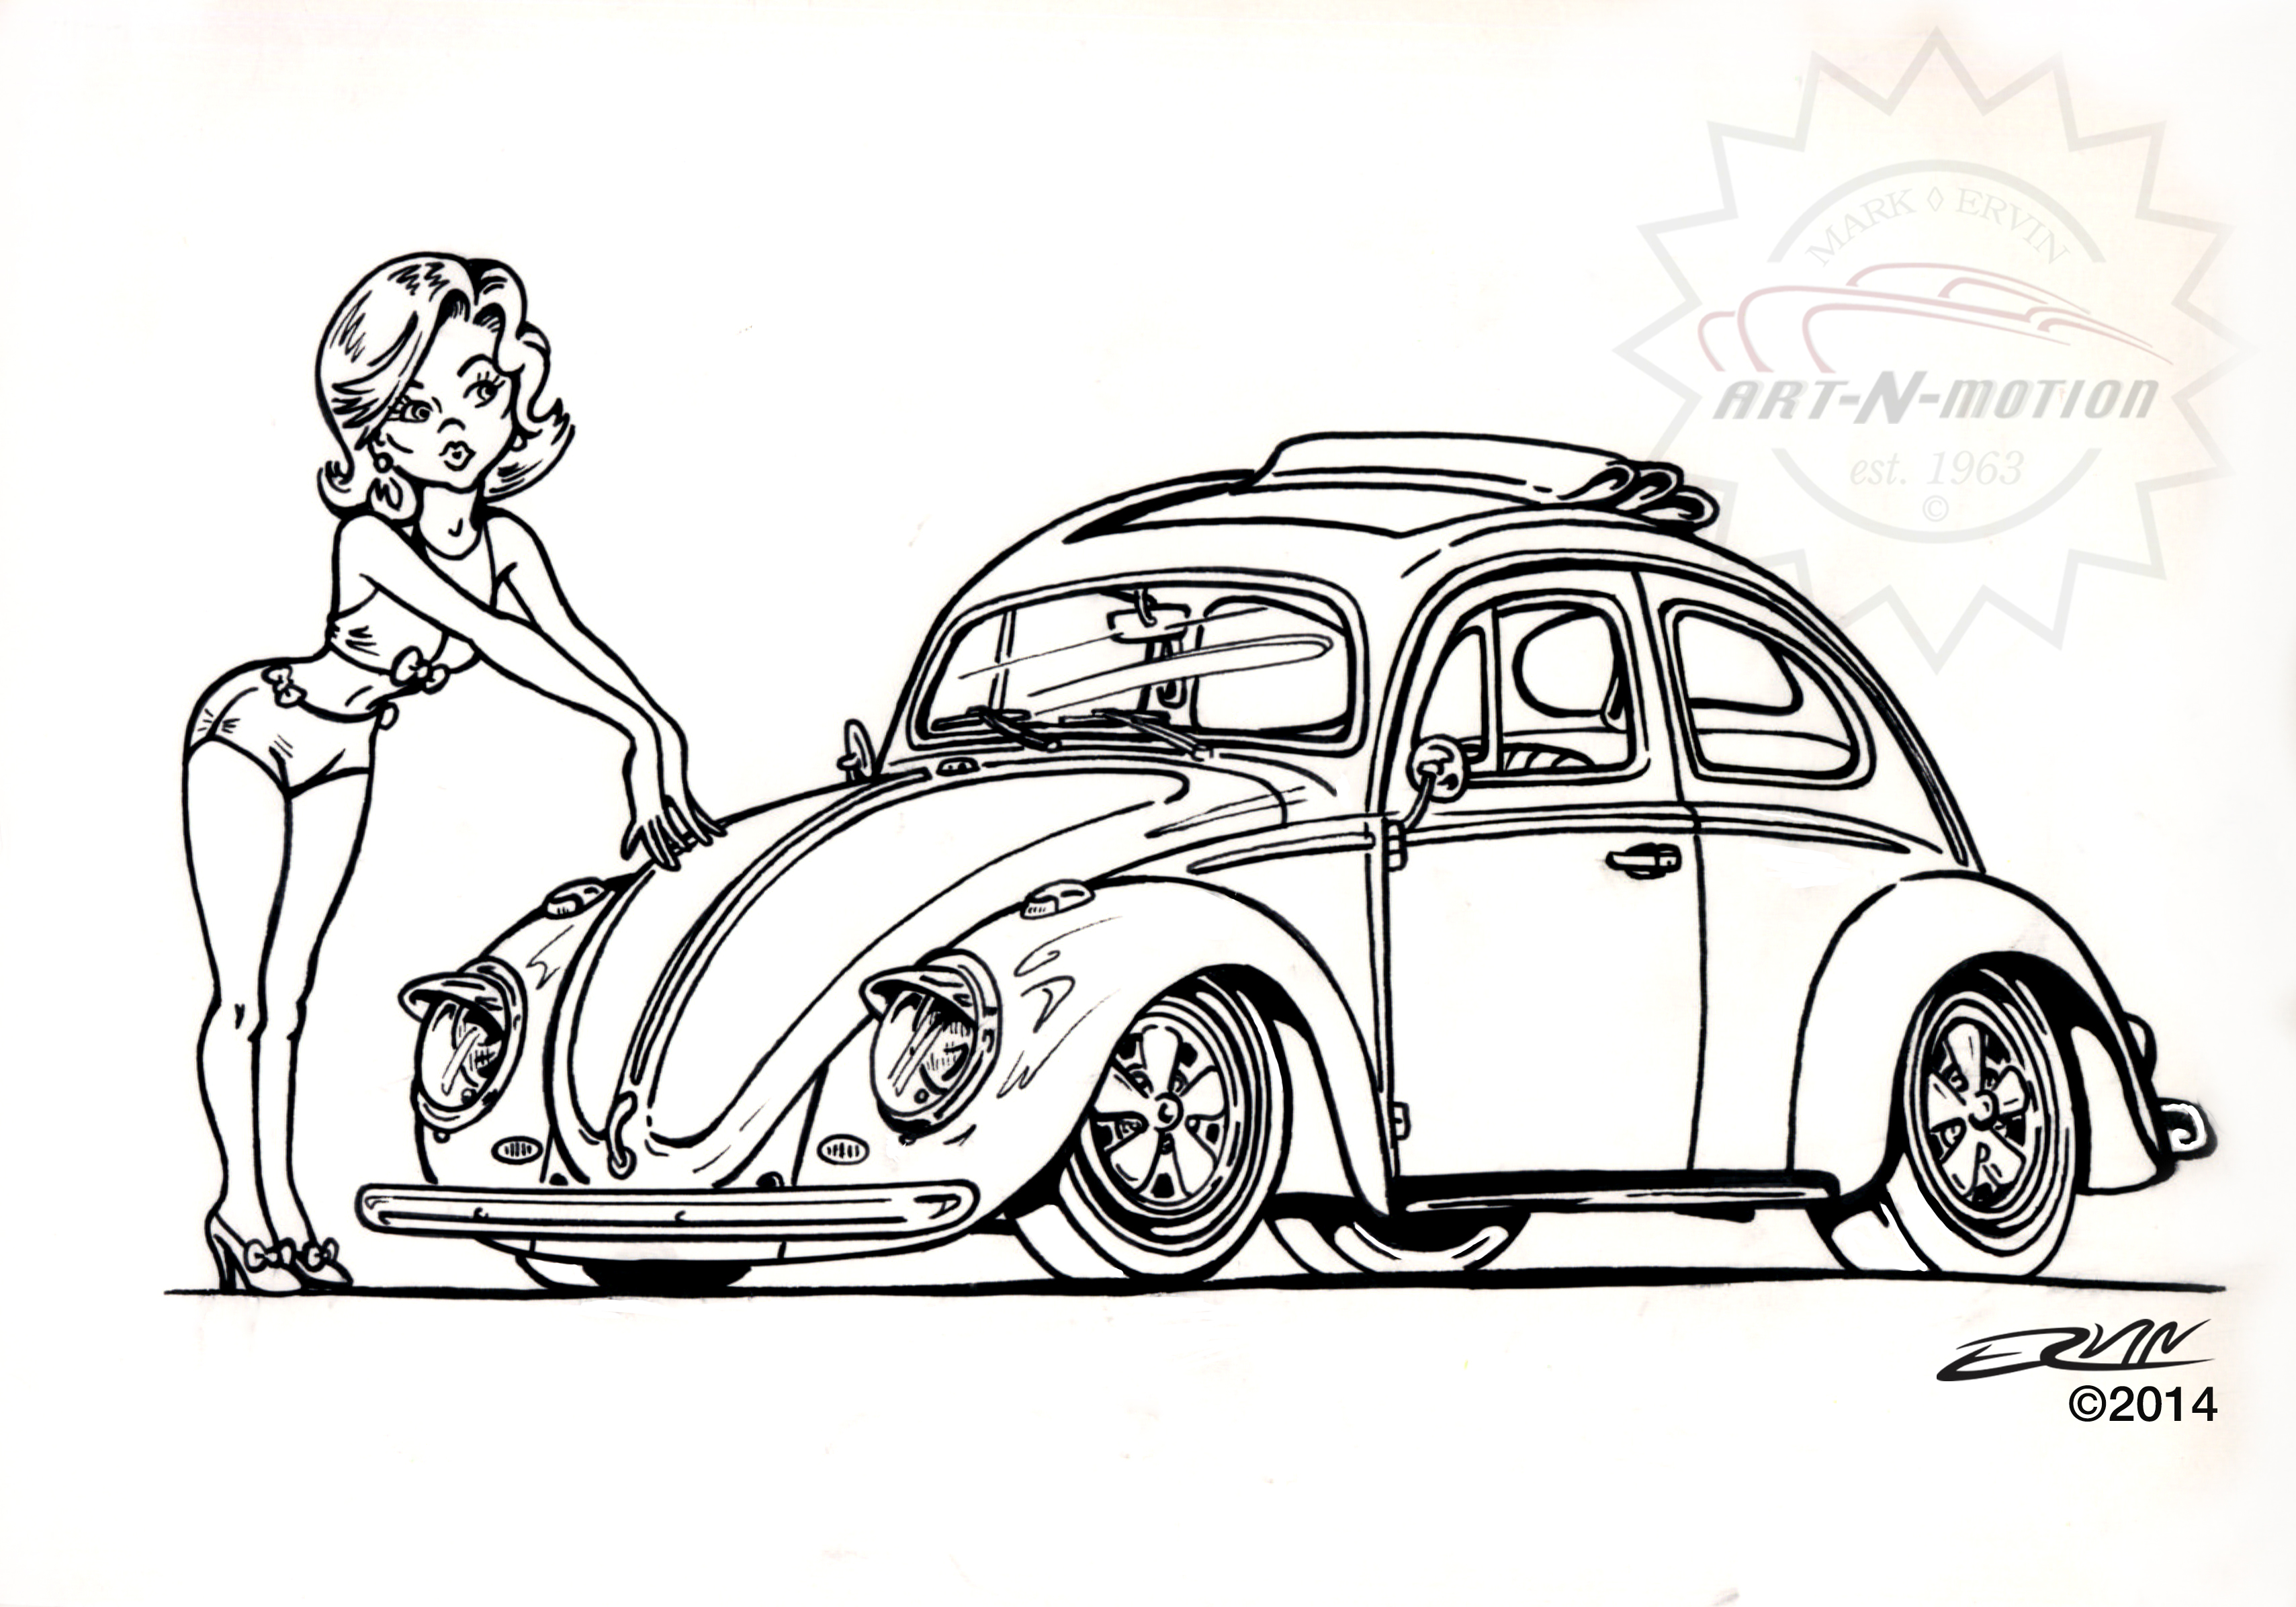 Drawn vehicle future Their The who and There